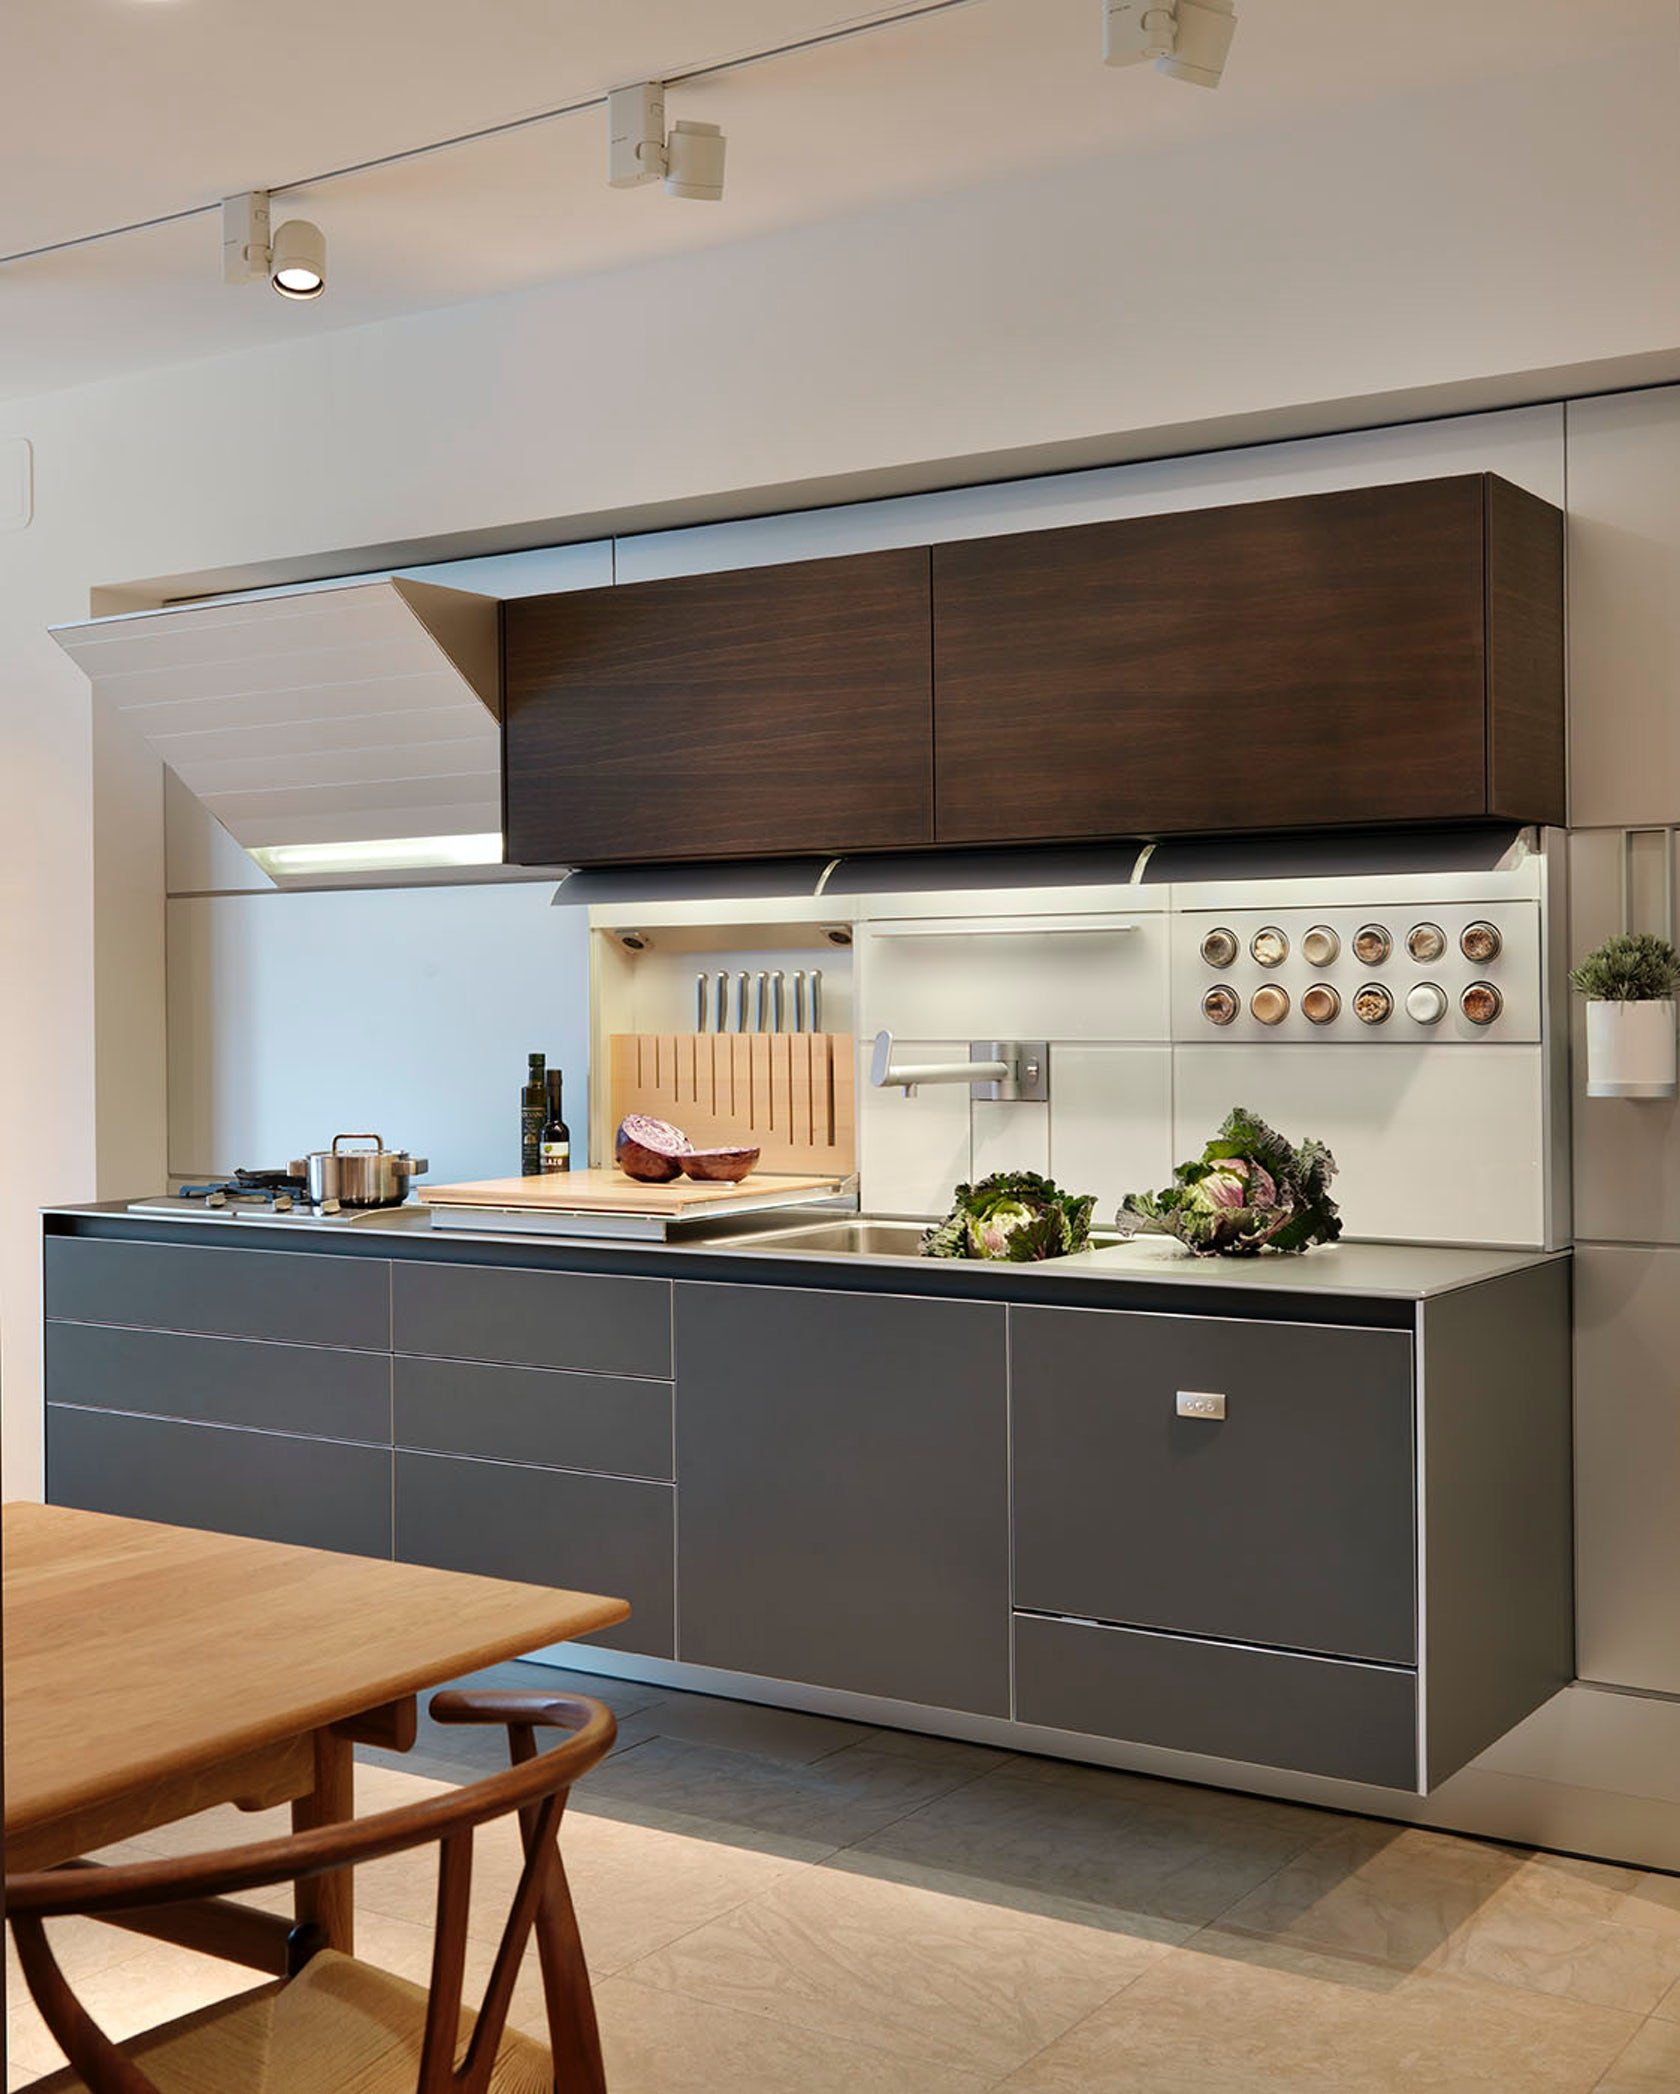 Kitchen Showrooms Nyc: Kitchen Architecture's Bulthaup Showroom In Oxford